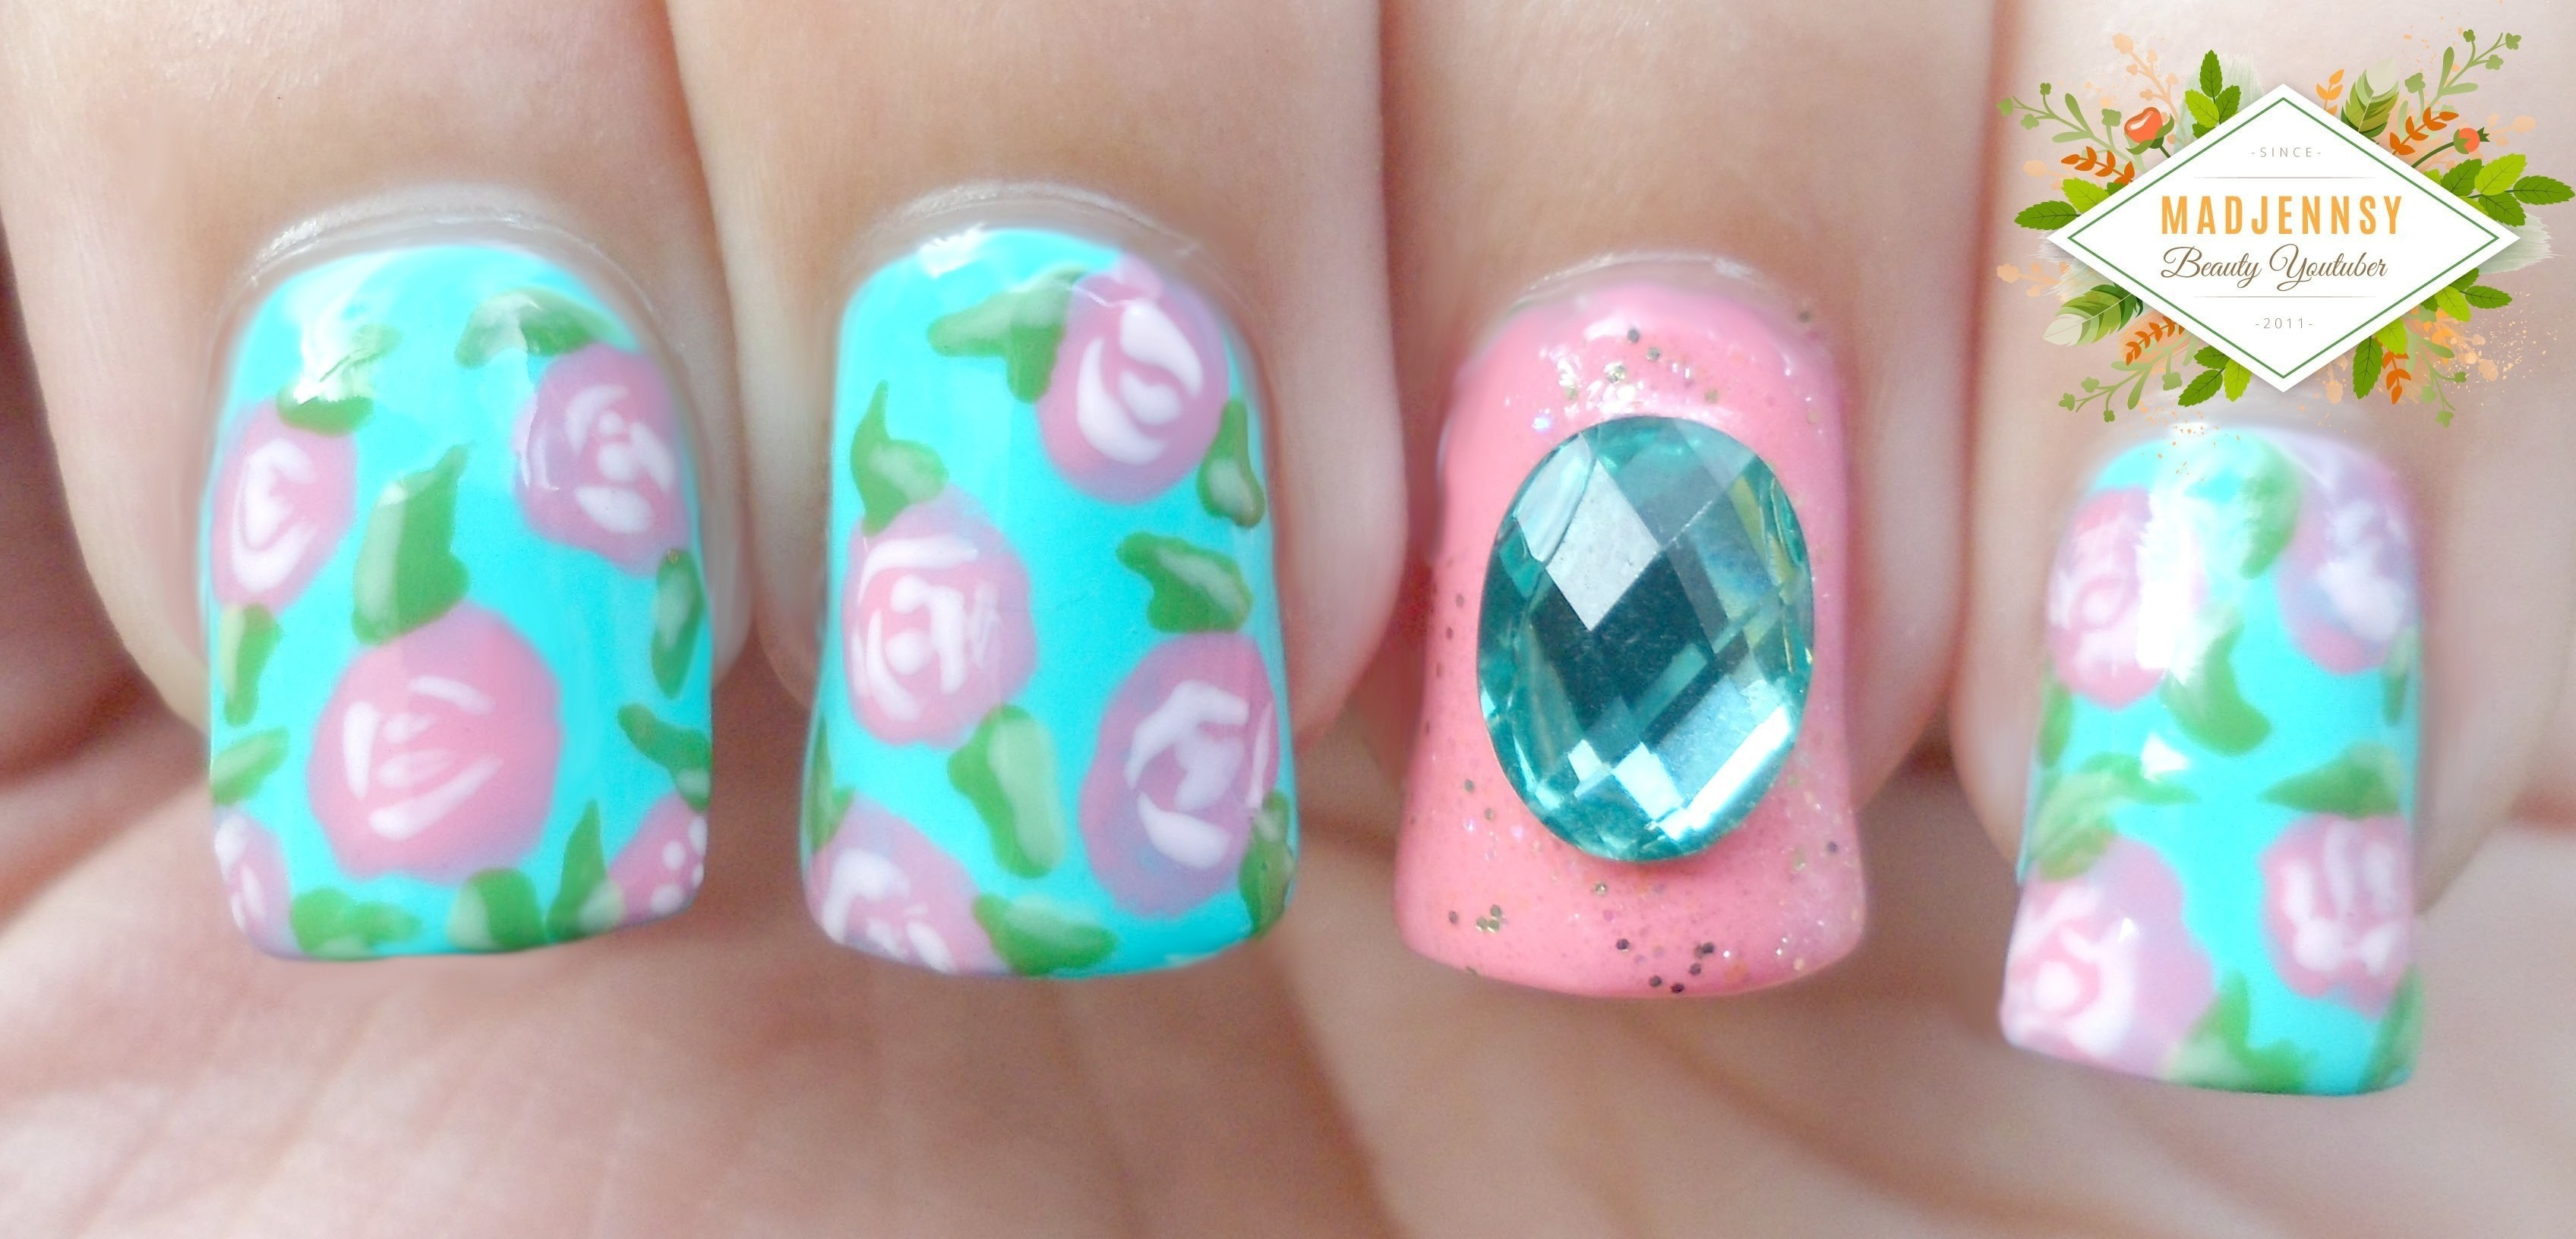 Vintage Roses Nail Art · How To Paint Patterned Nail Art · Beauty on ...